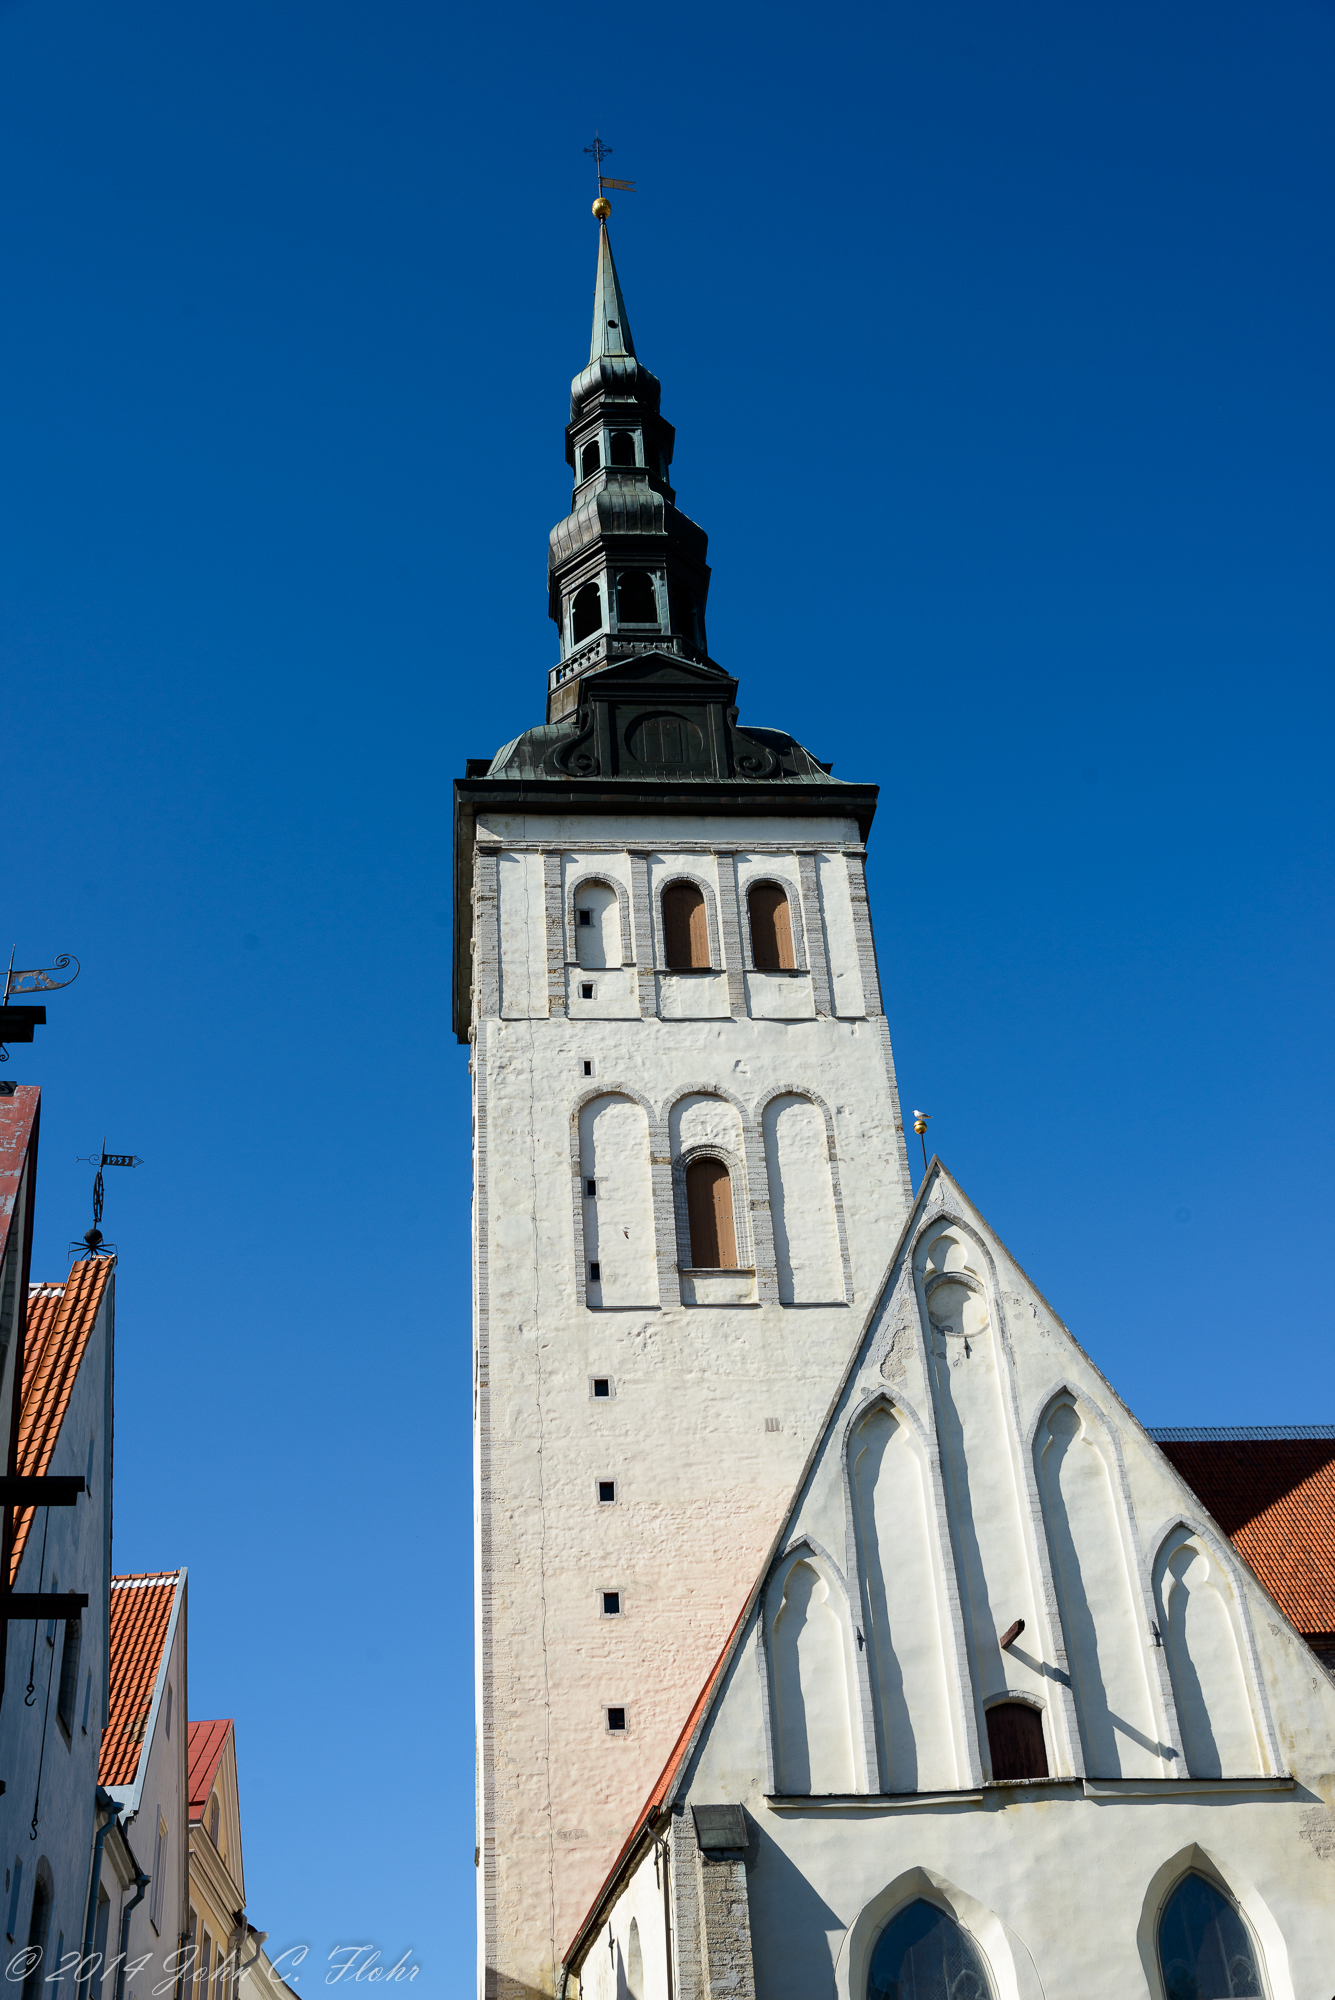 St. Nicholas' Church Tower